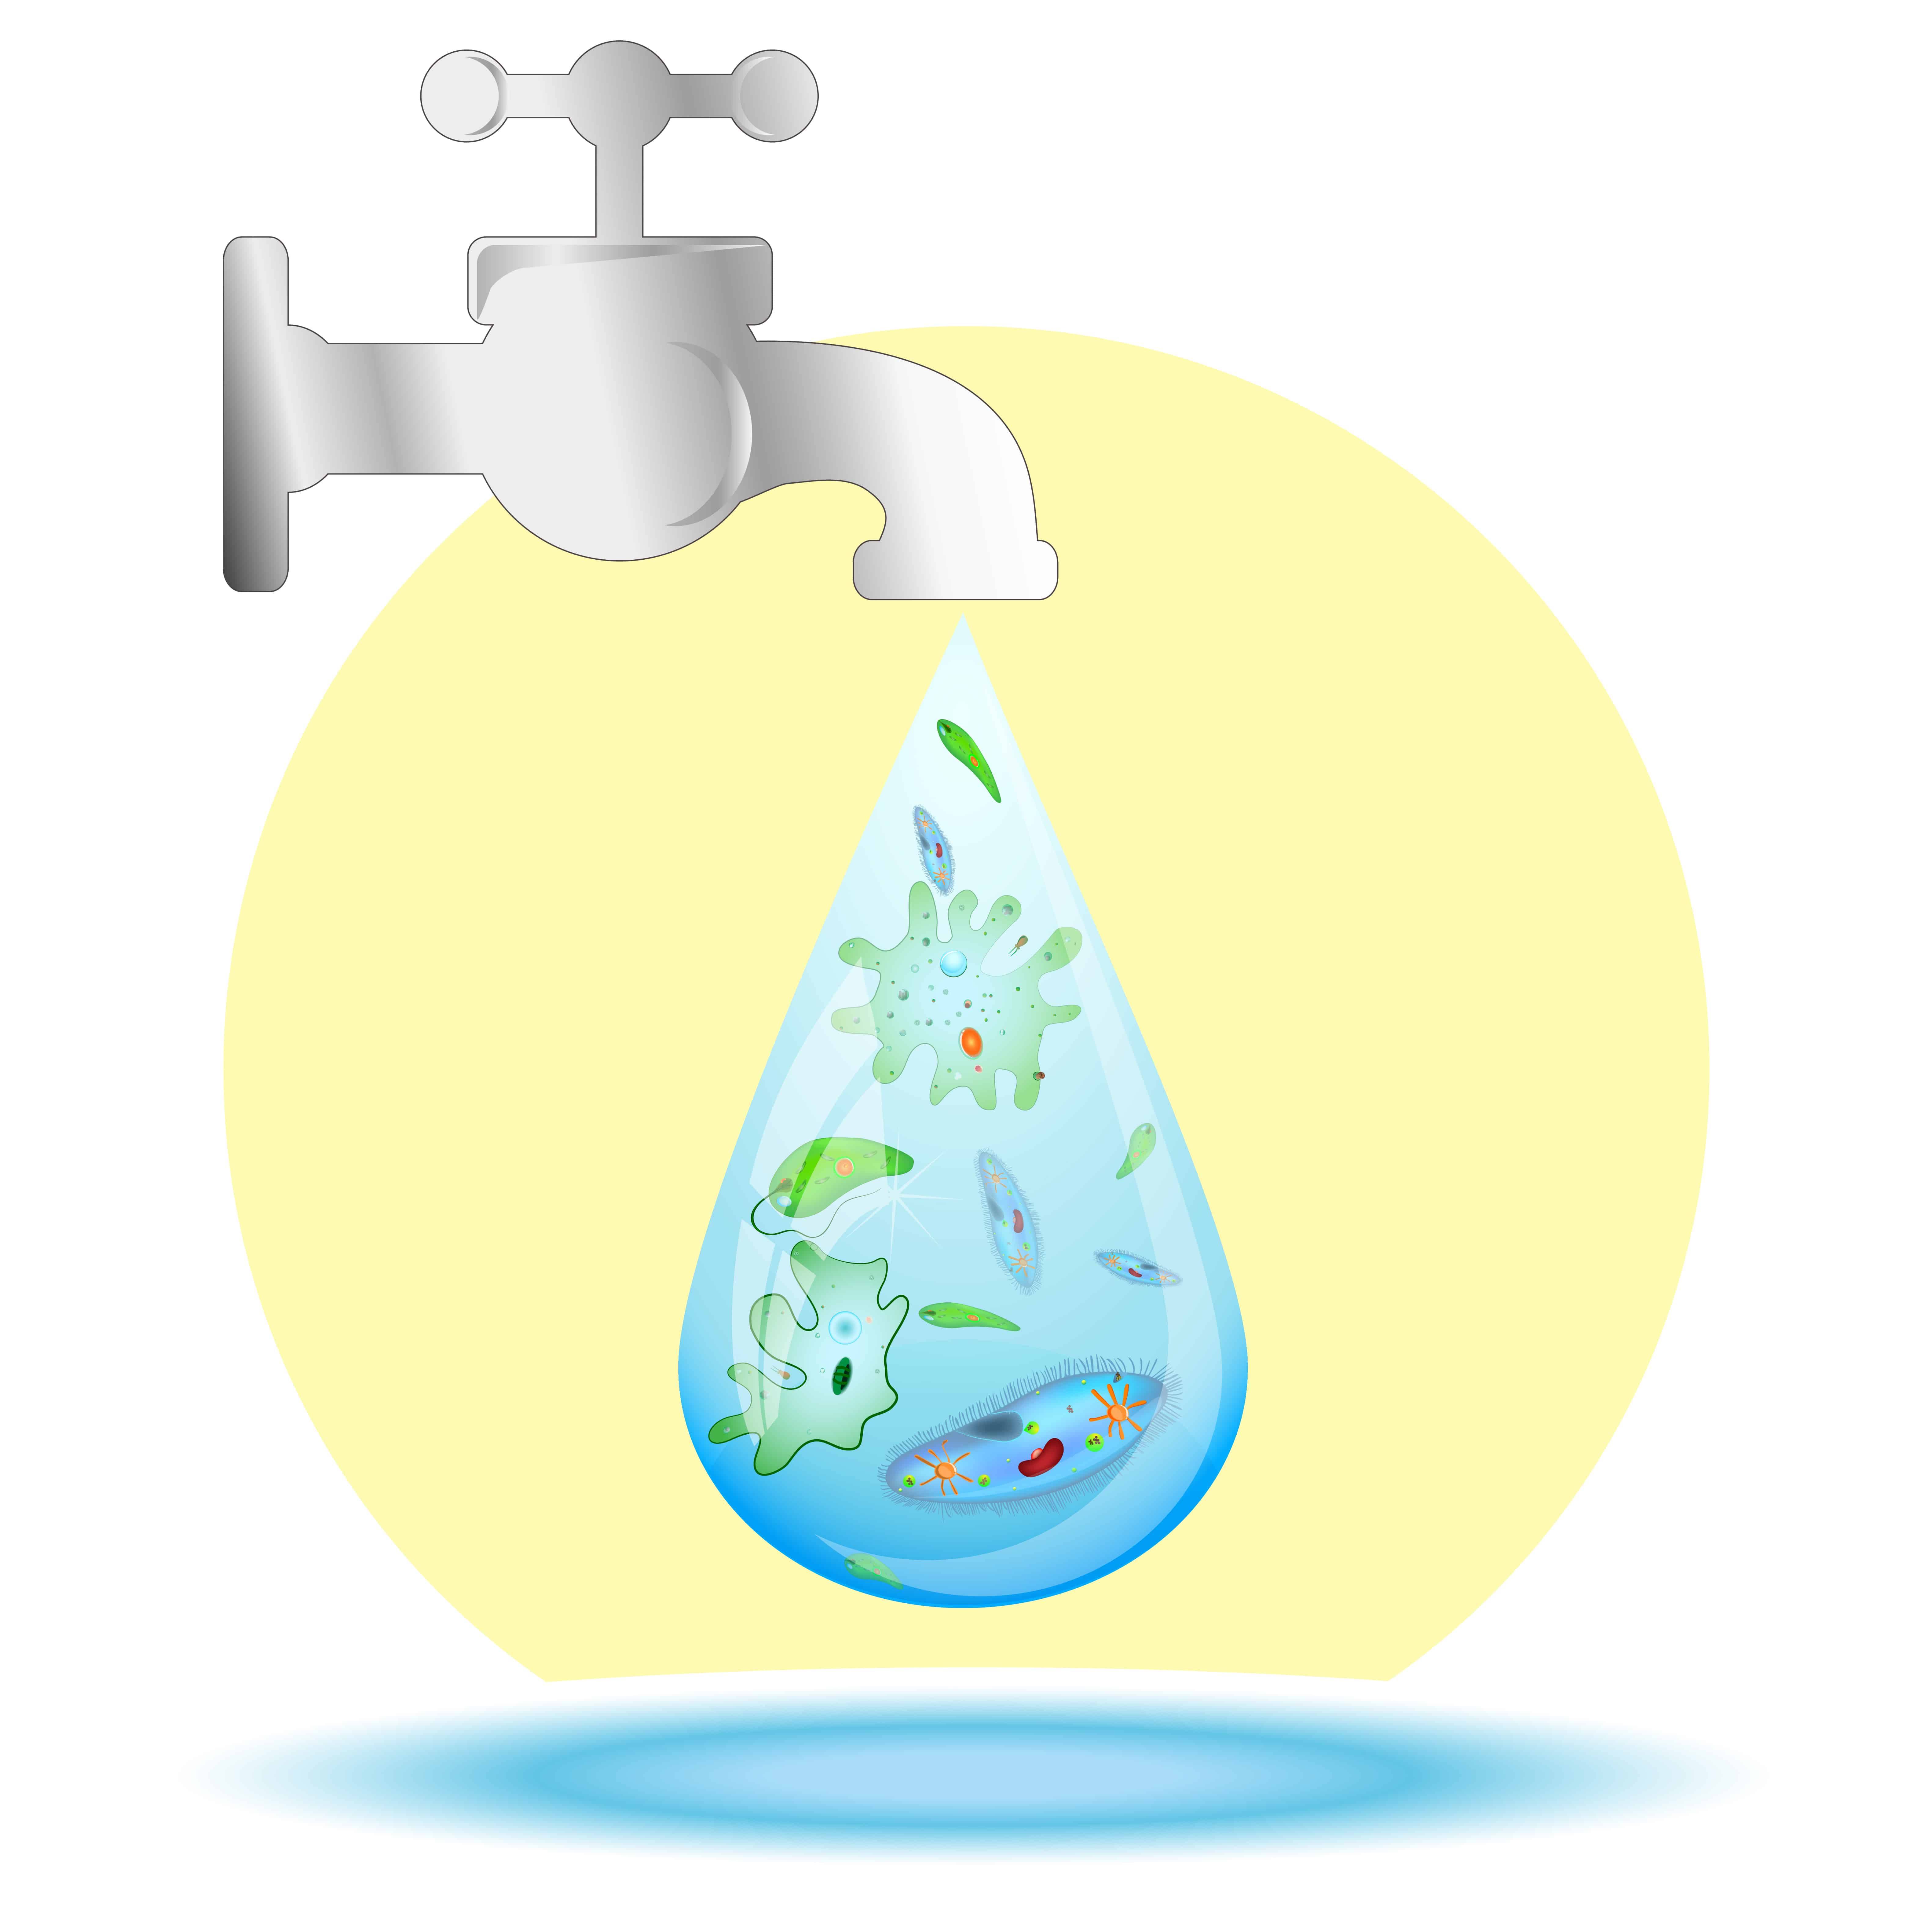 Illustration of polluted tap water